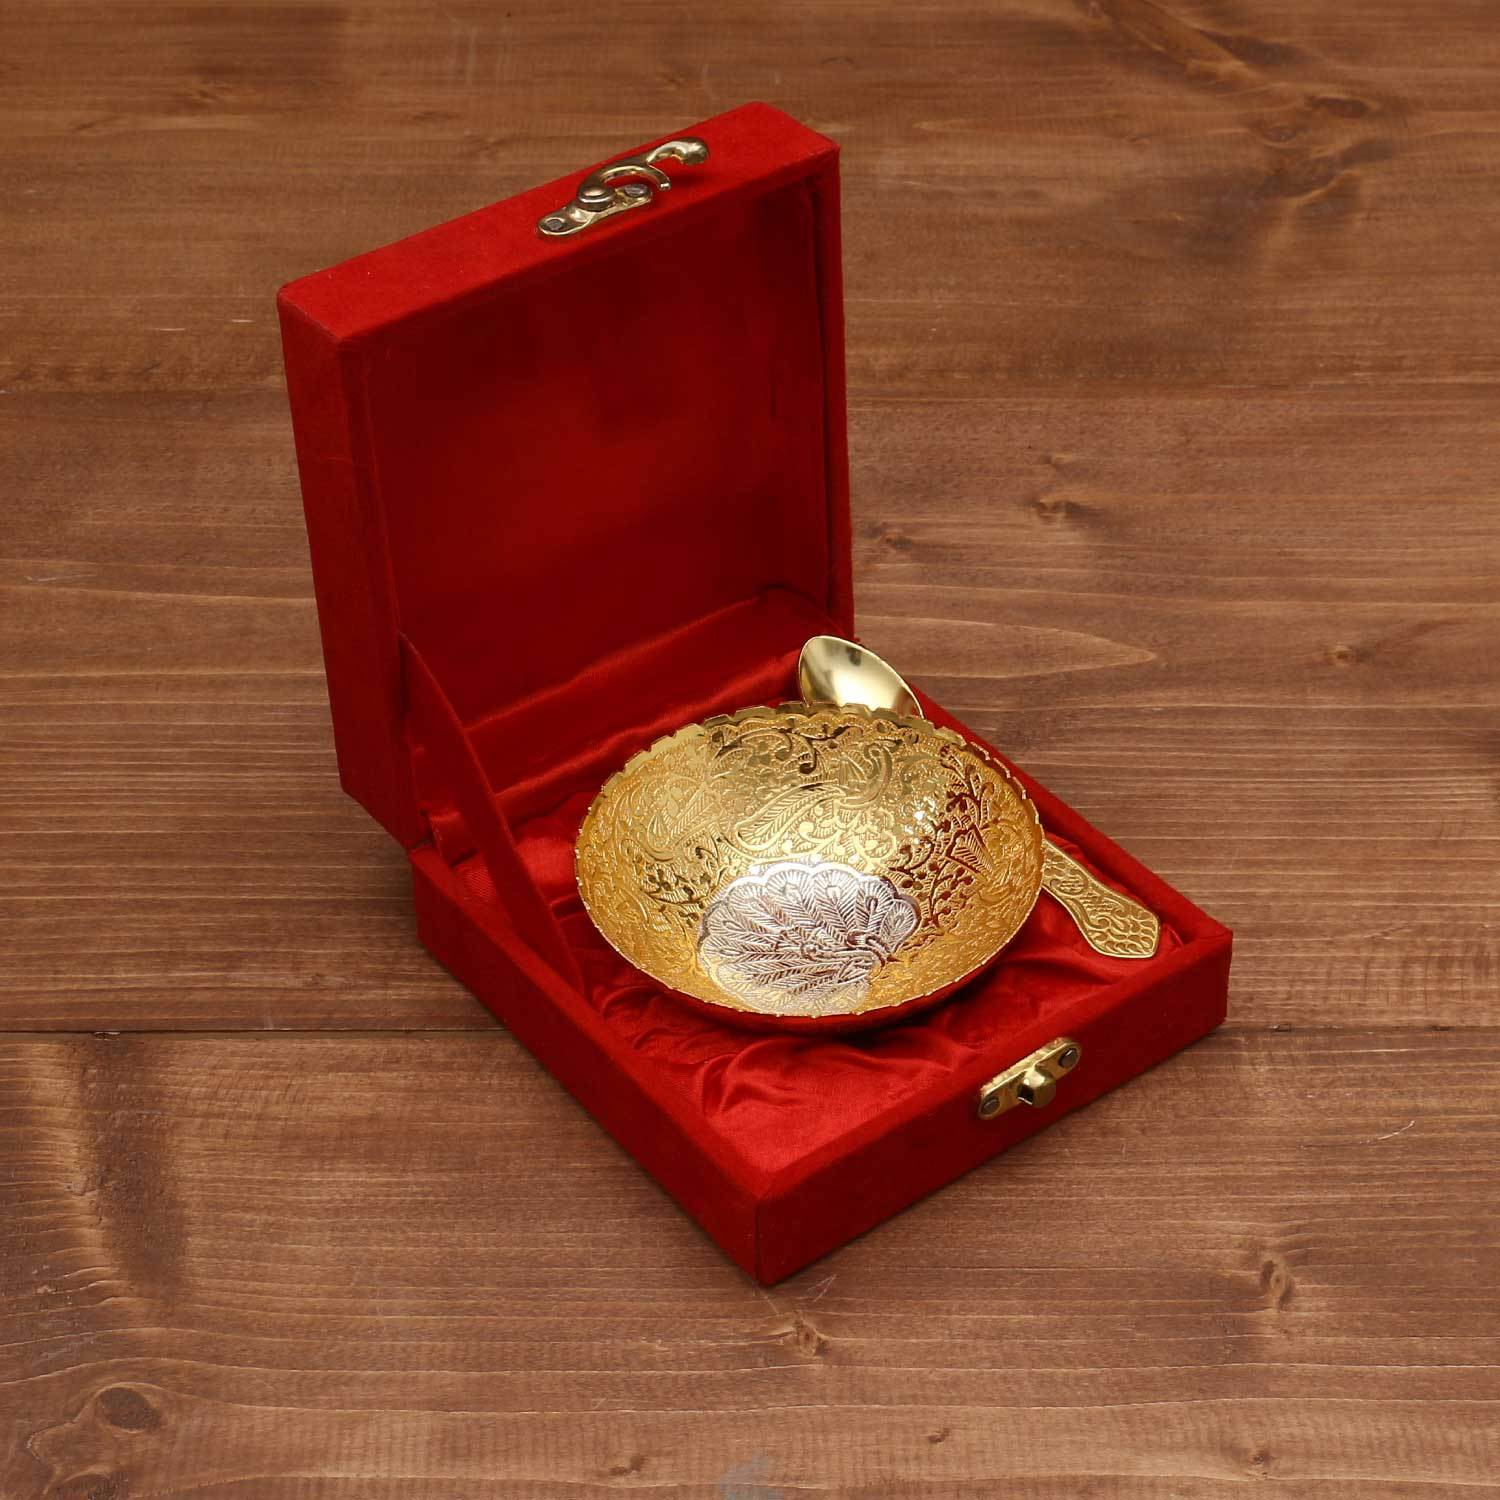 Silver & Gold Plated Bowl 4 inch with Spoon return gift